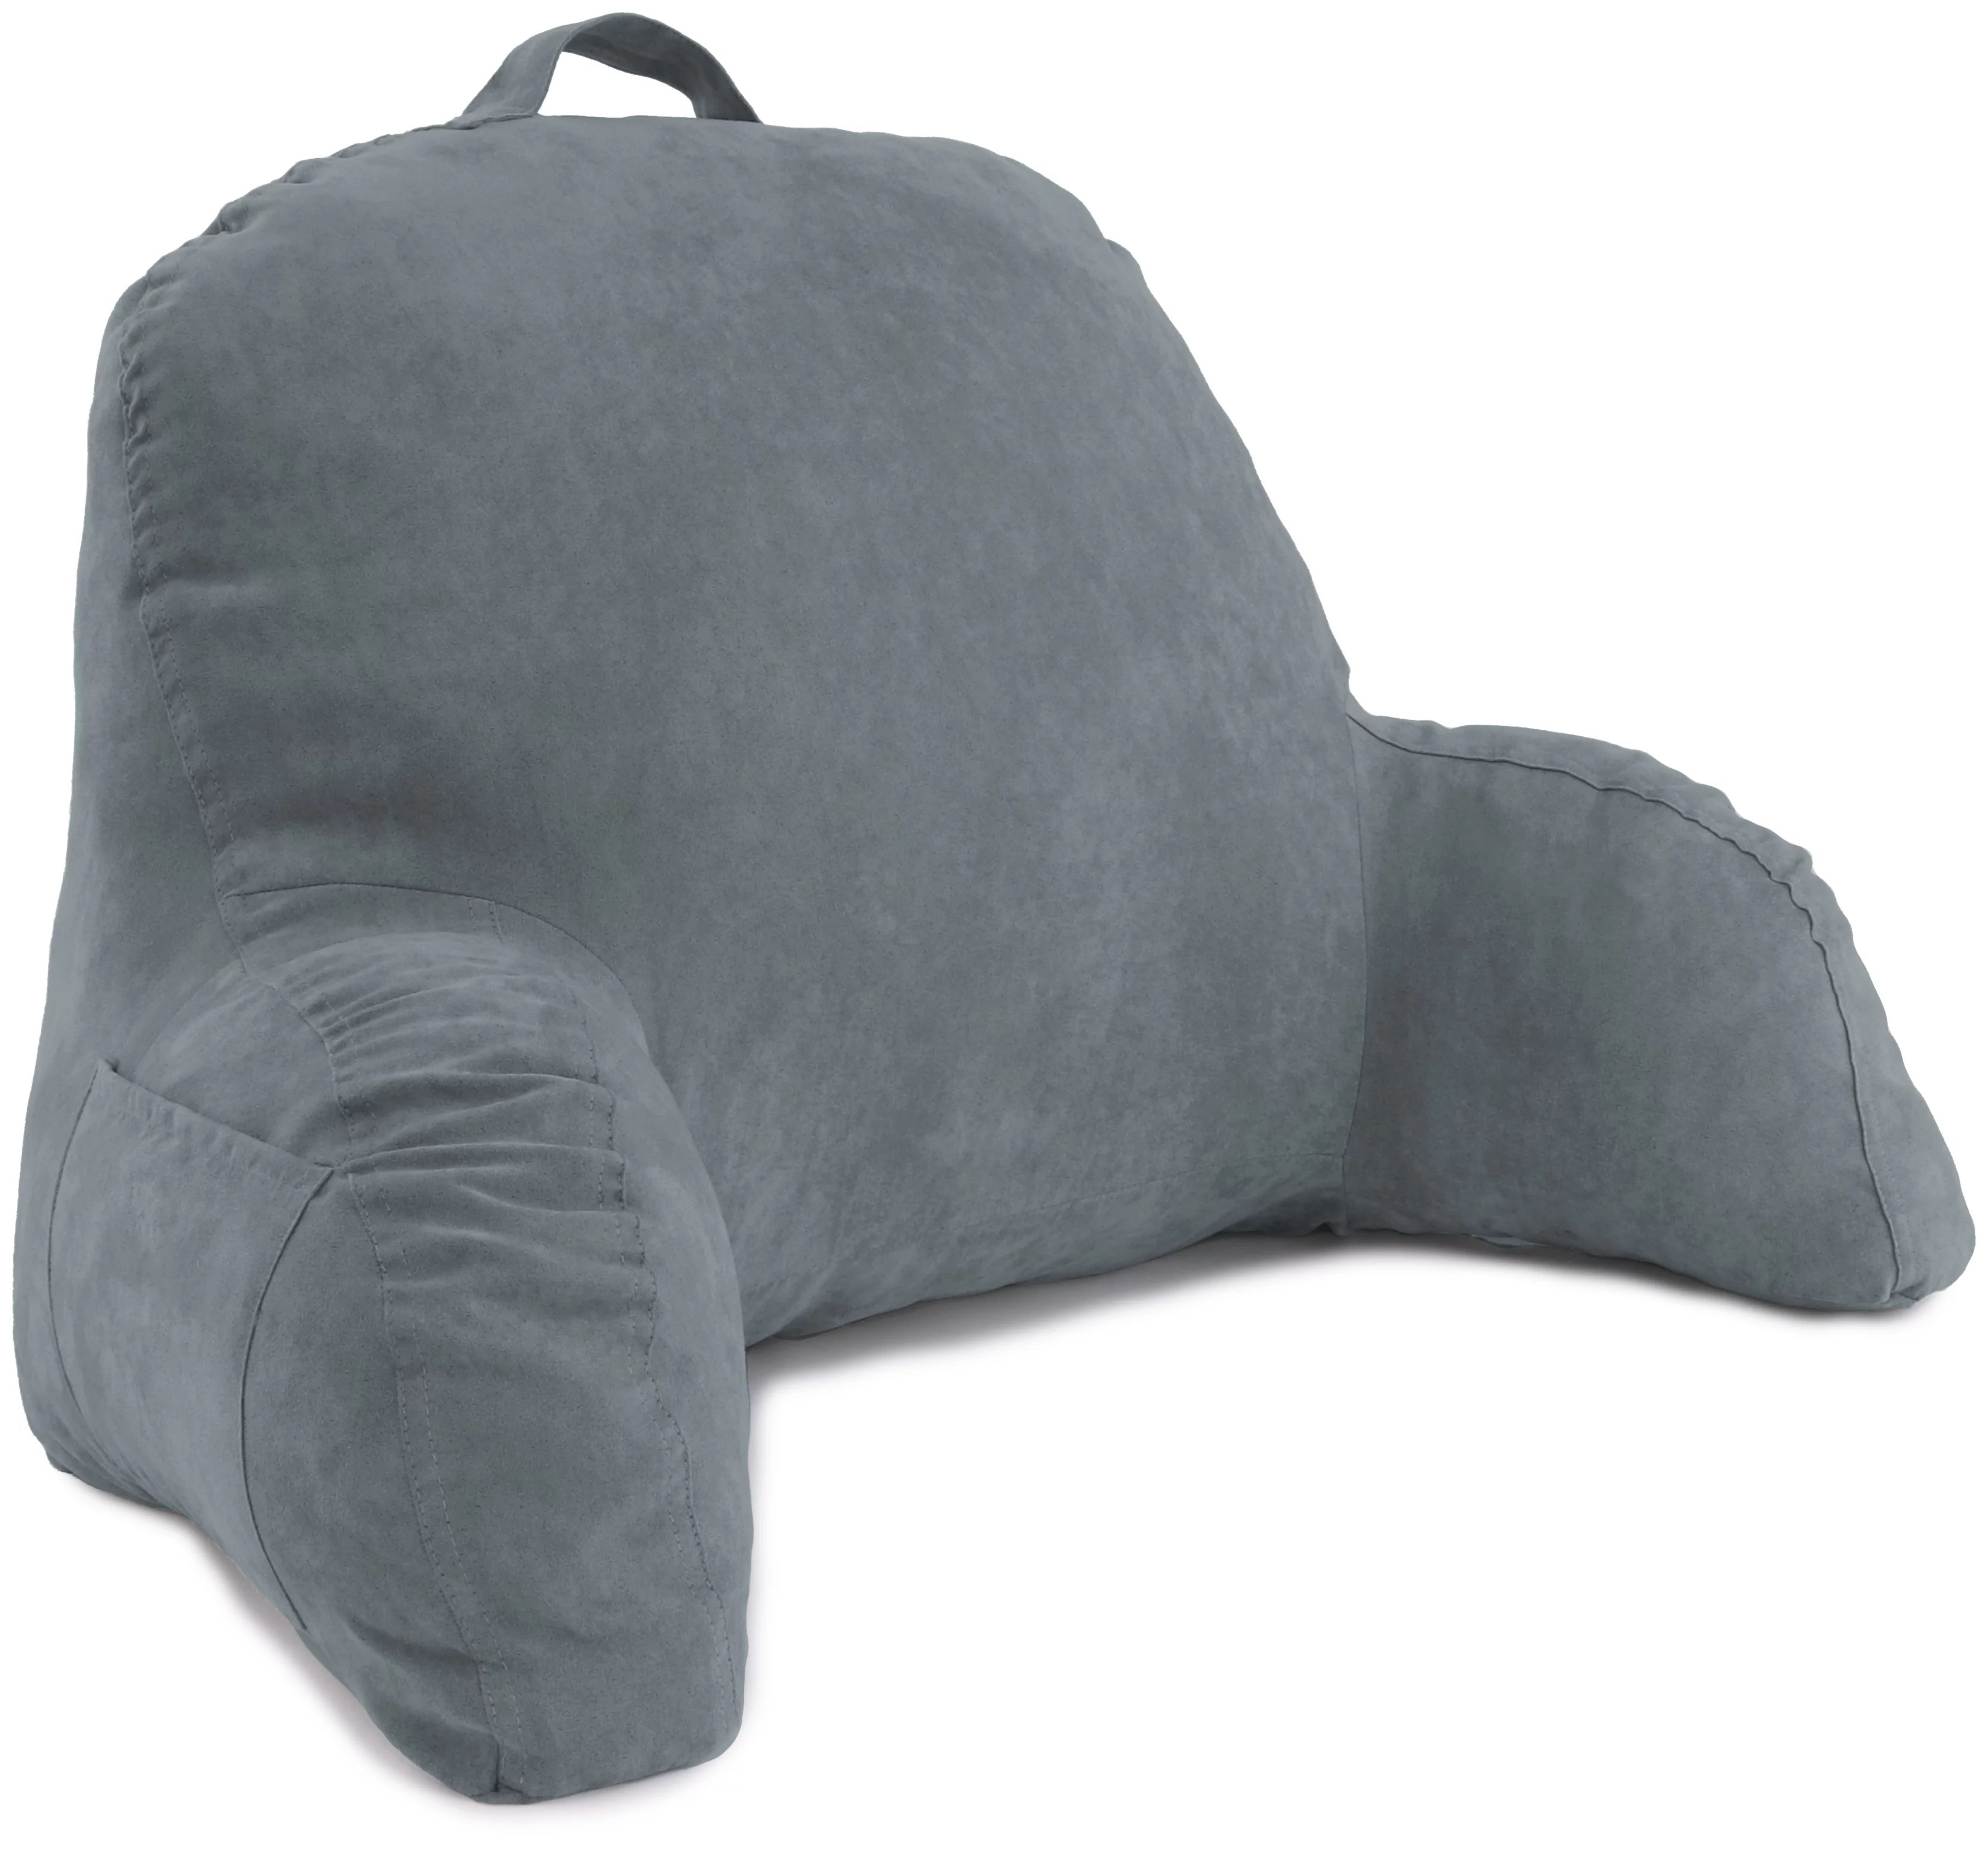 deluxe comfort microsuede bed rest reading and bed rest lounger a sitting support pillow soft but firmly stuffed fiberfill backrest pillow with